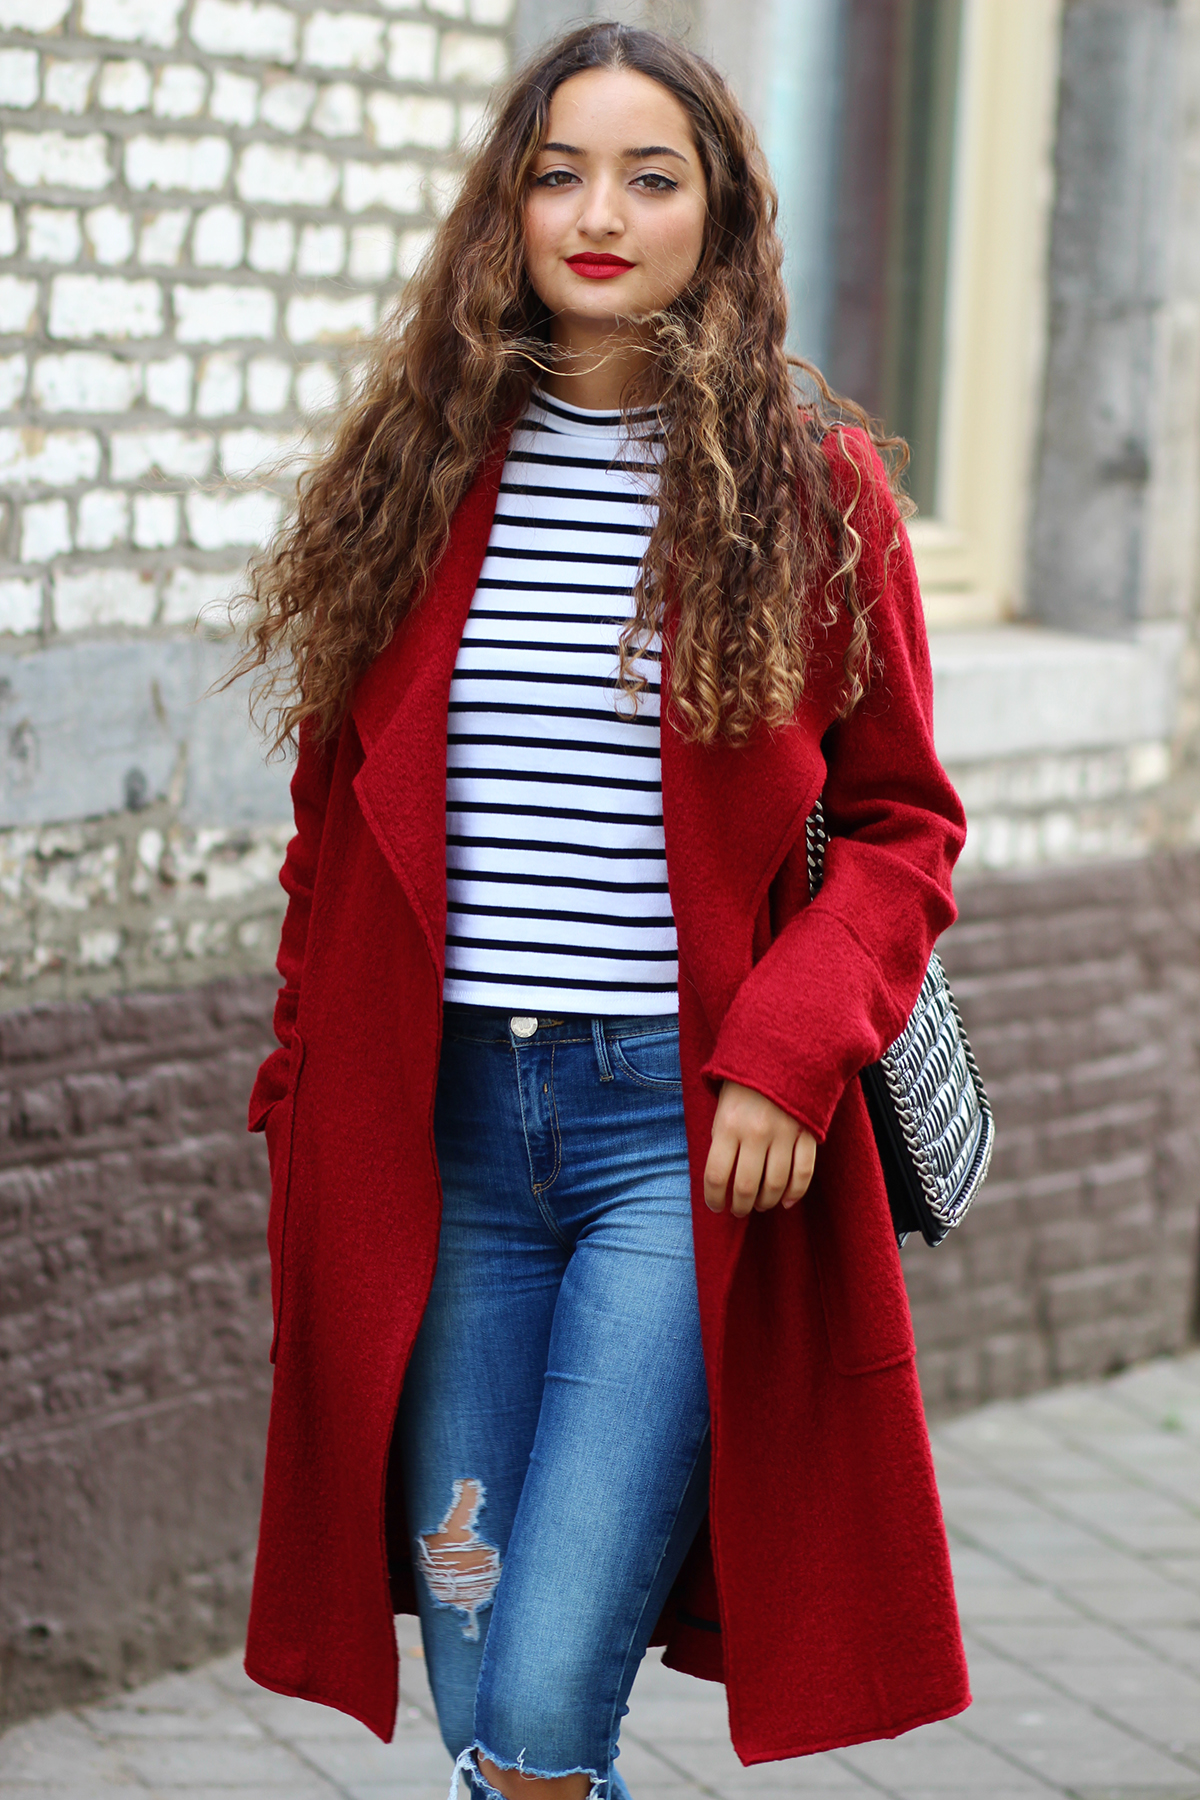 Girl In The Red Coat Fashionblog Style Diary By Ranim Helwani